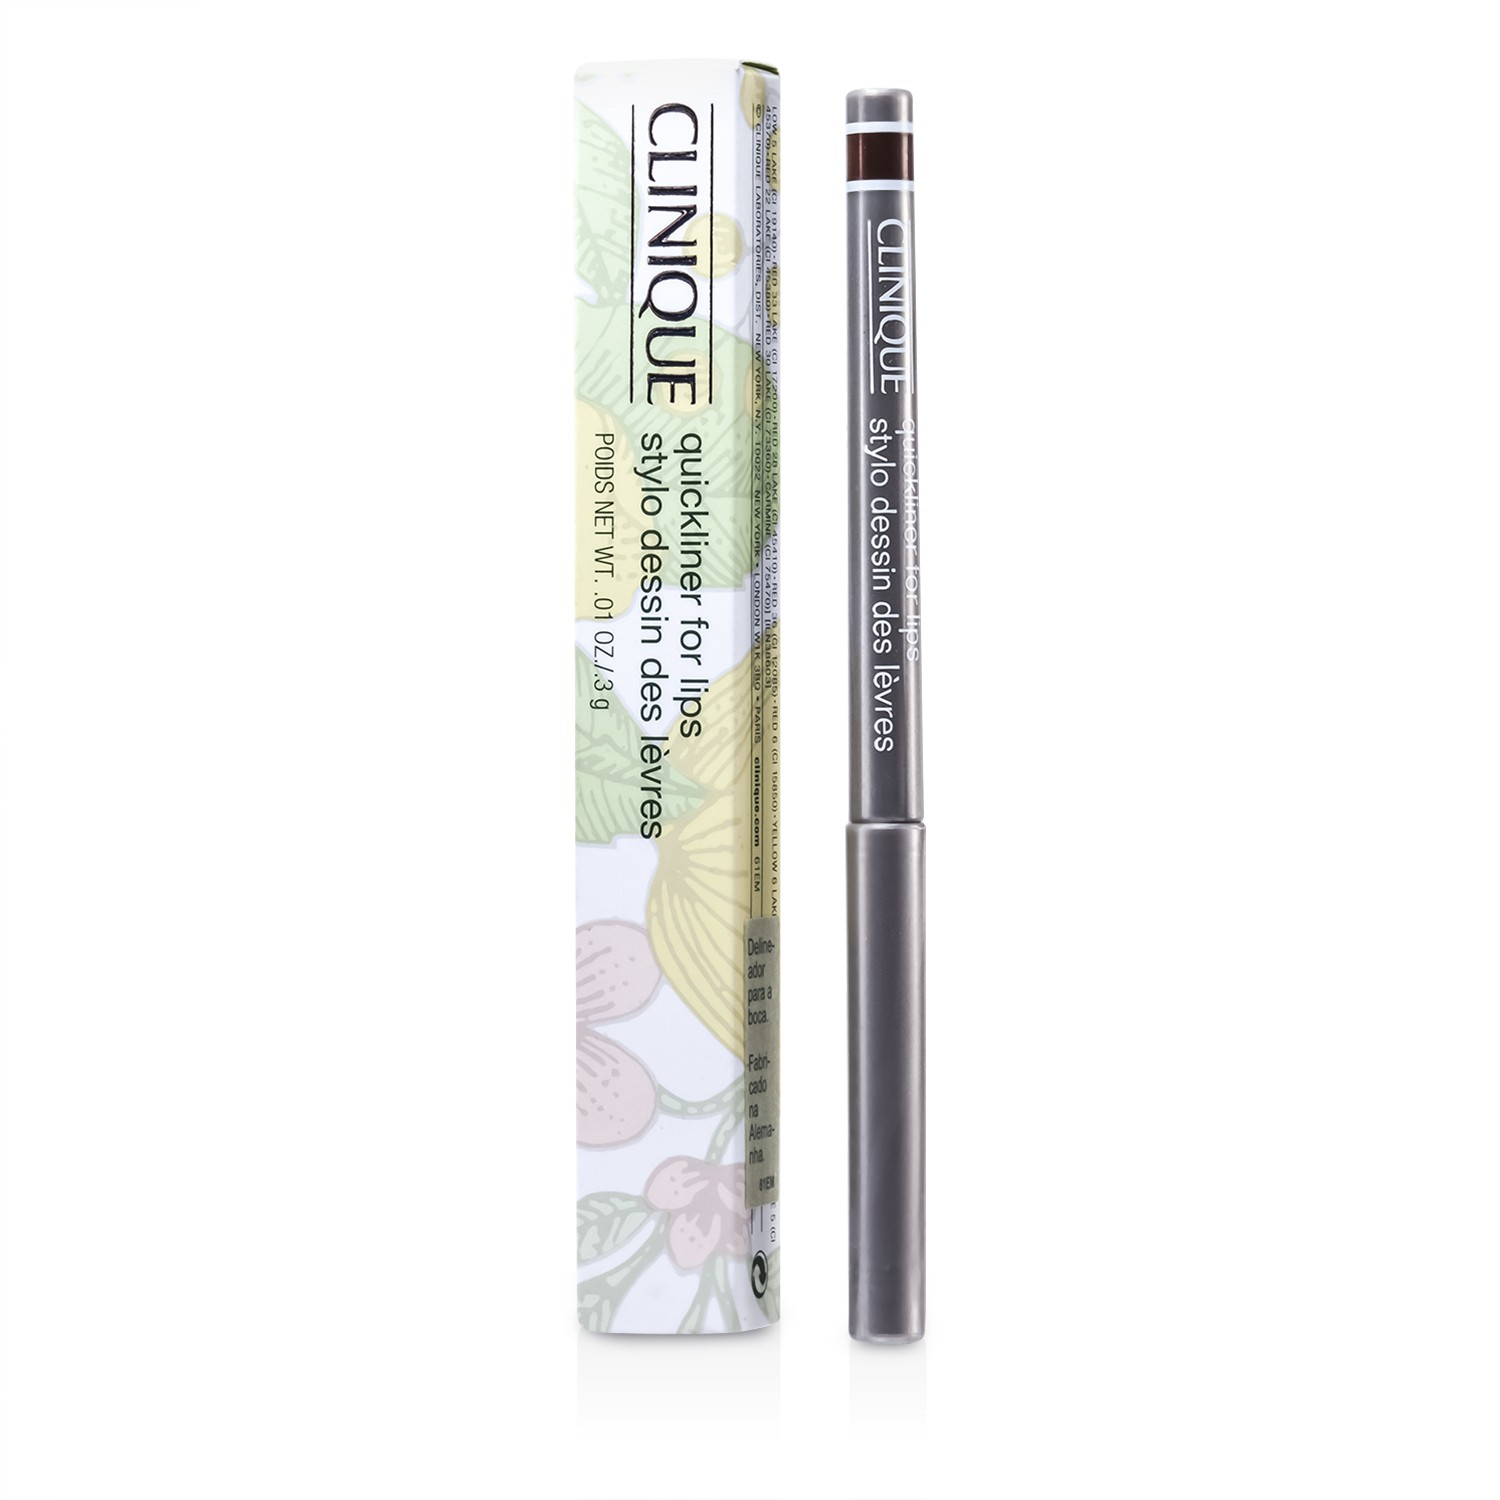 Quickliner For Lips - Chocolate Chip